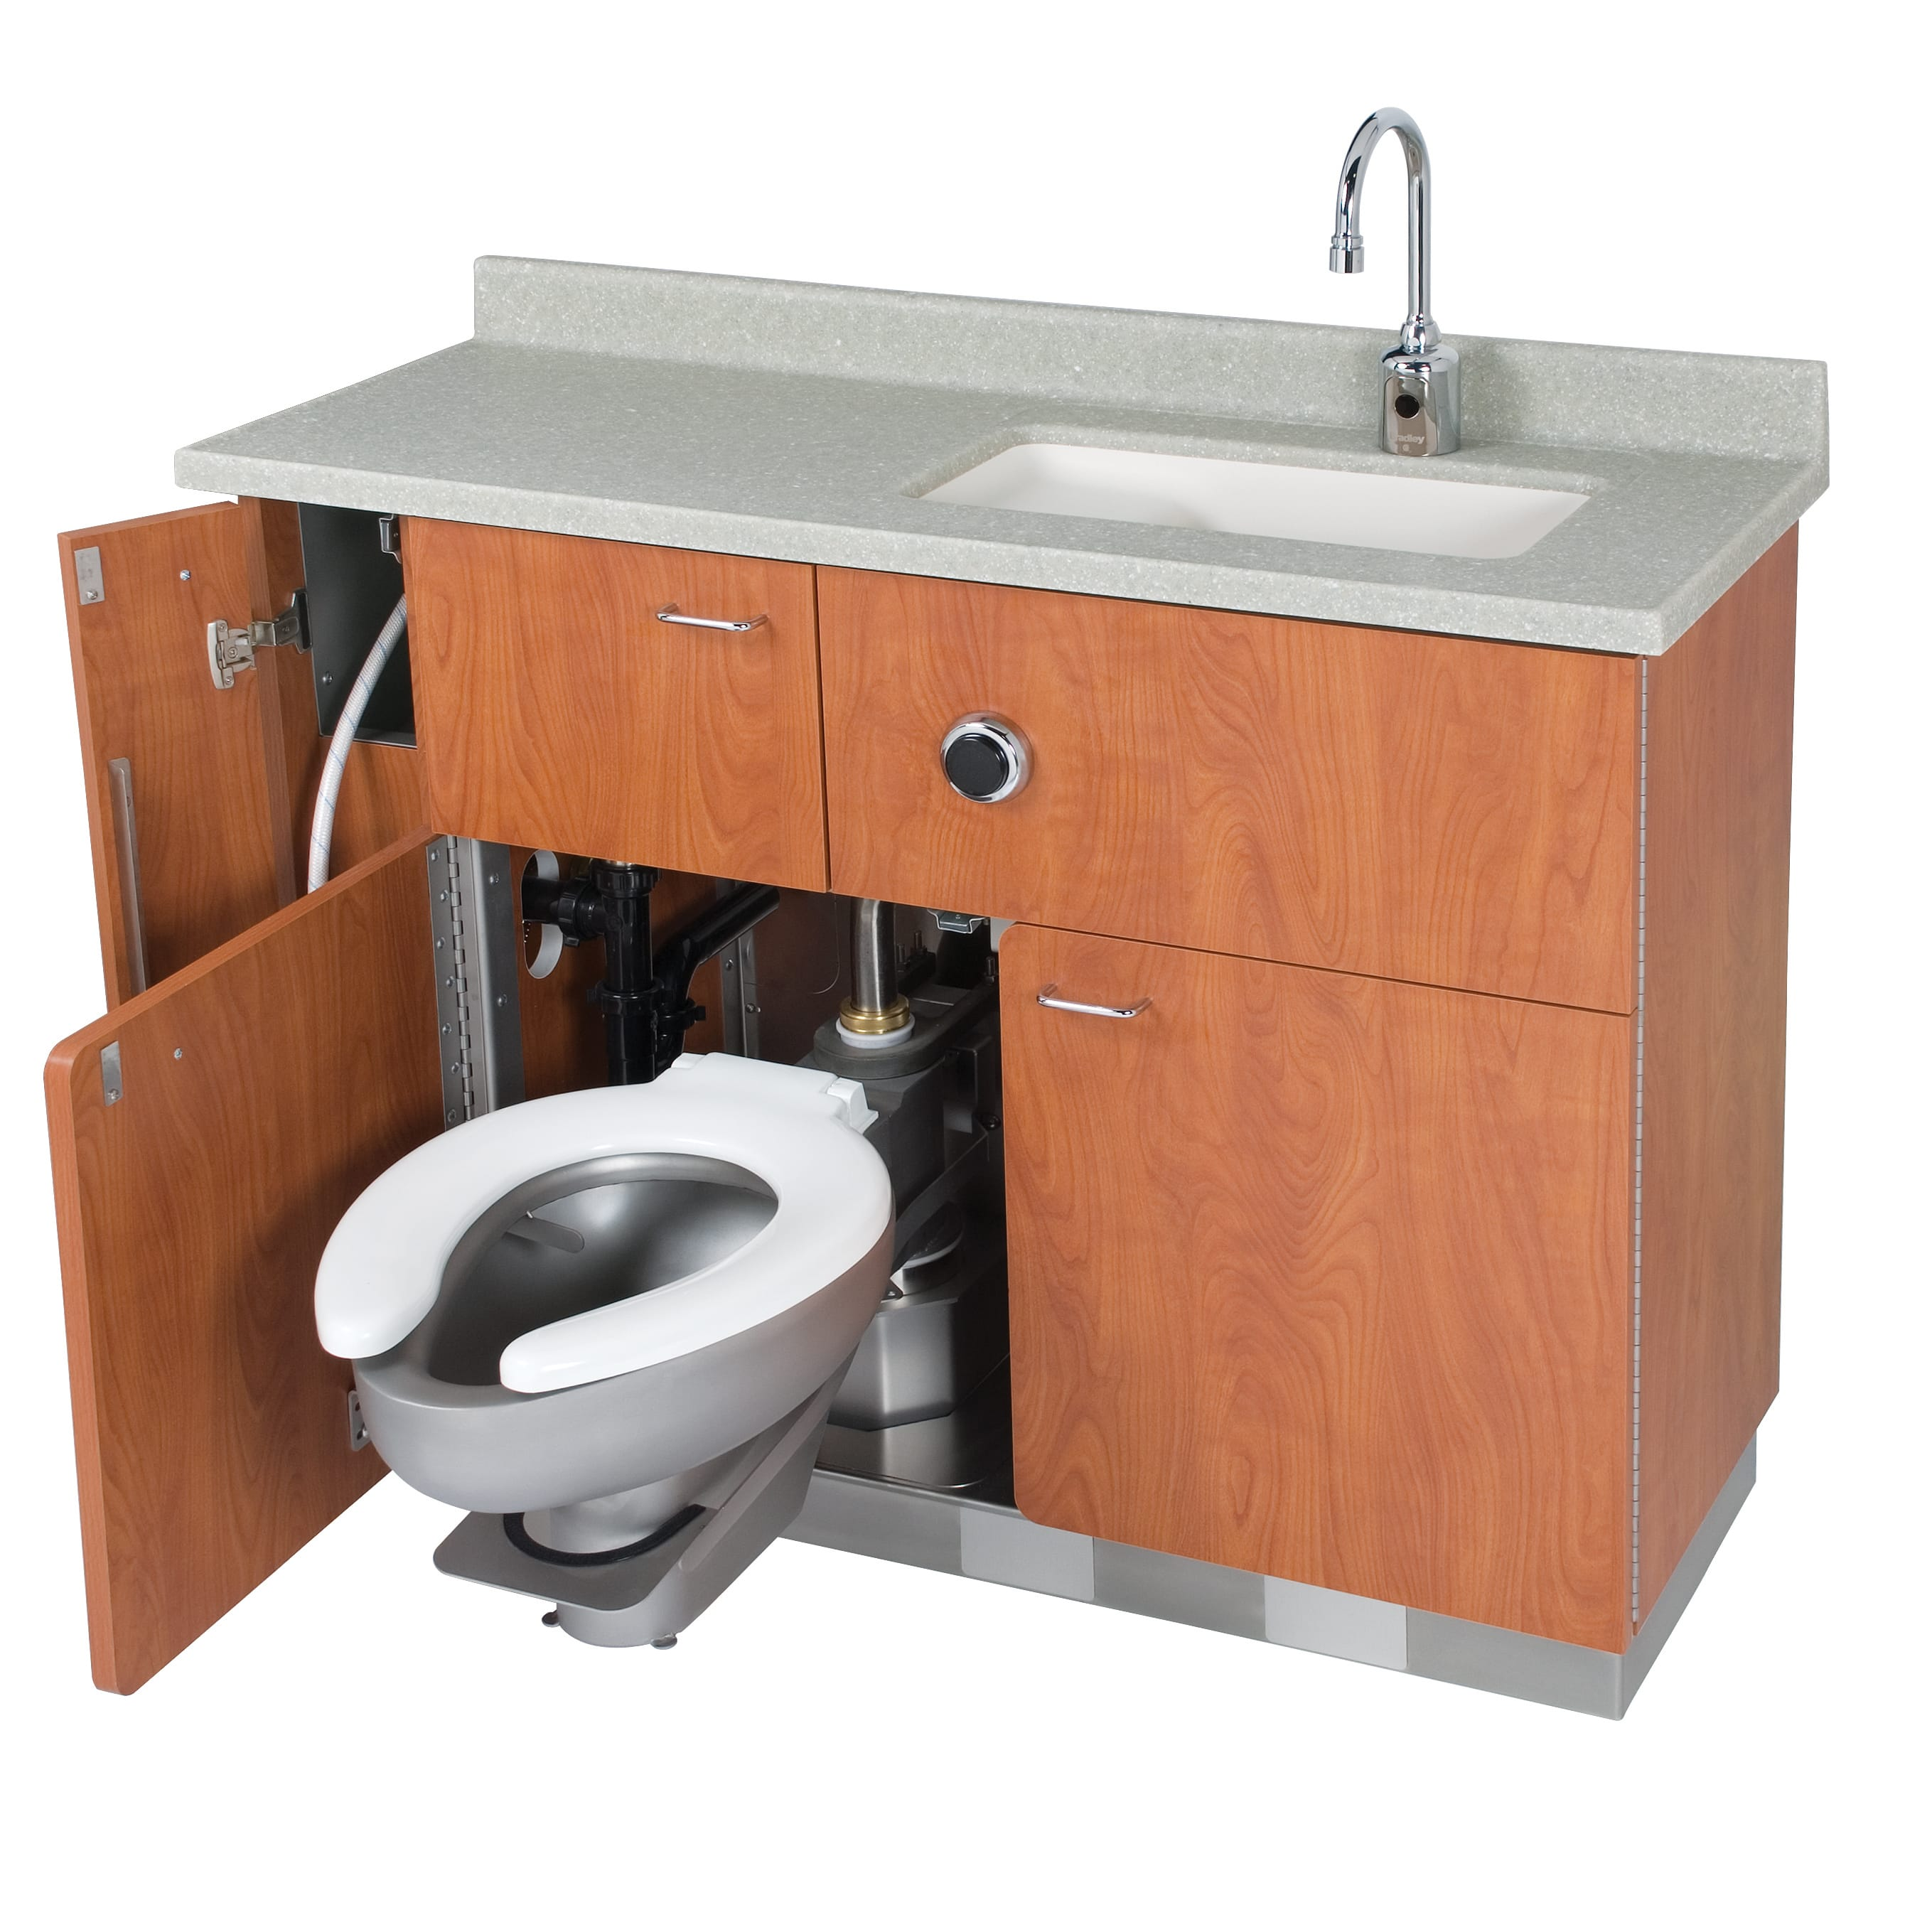 Washer Pan Lavatory Swing Out Water Closet Bed Pan Washer Comby